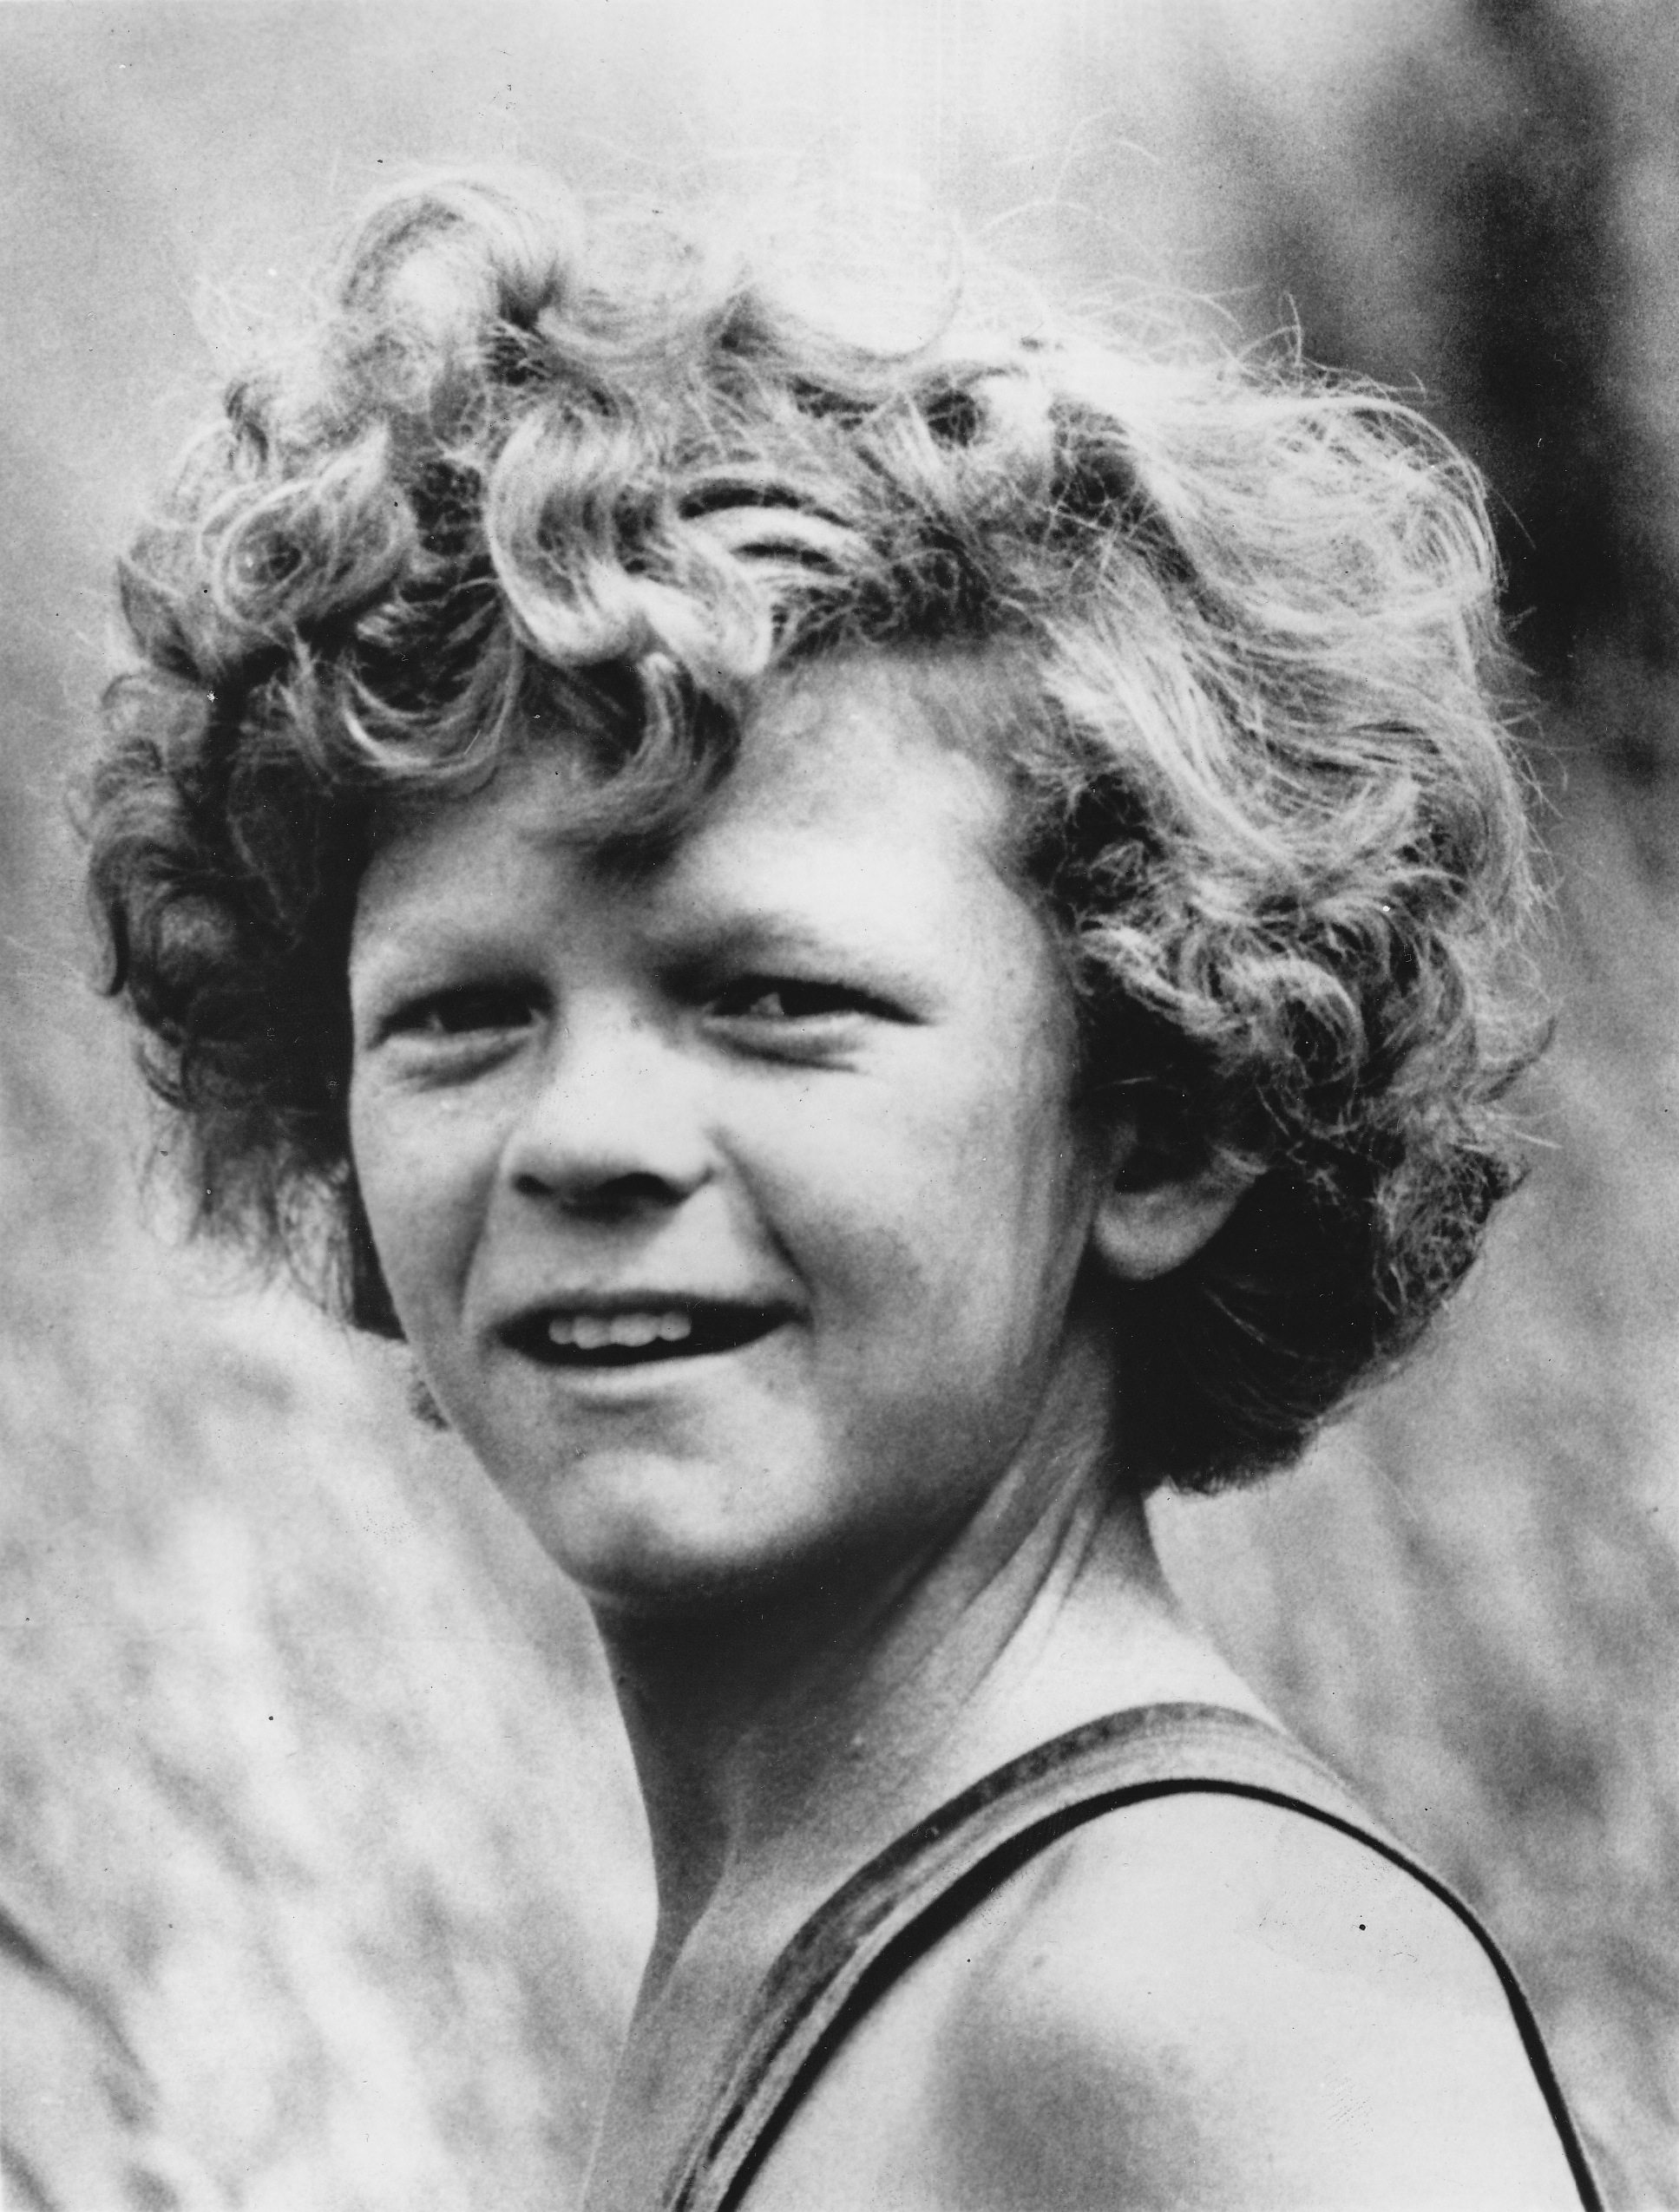 Johnny Whitaker Tom Sawyer Johnny Whitaker